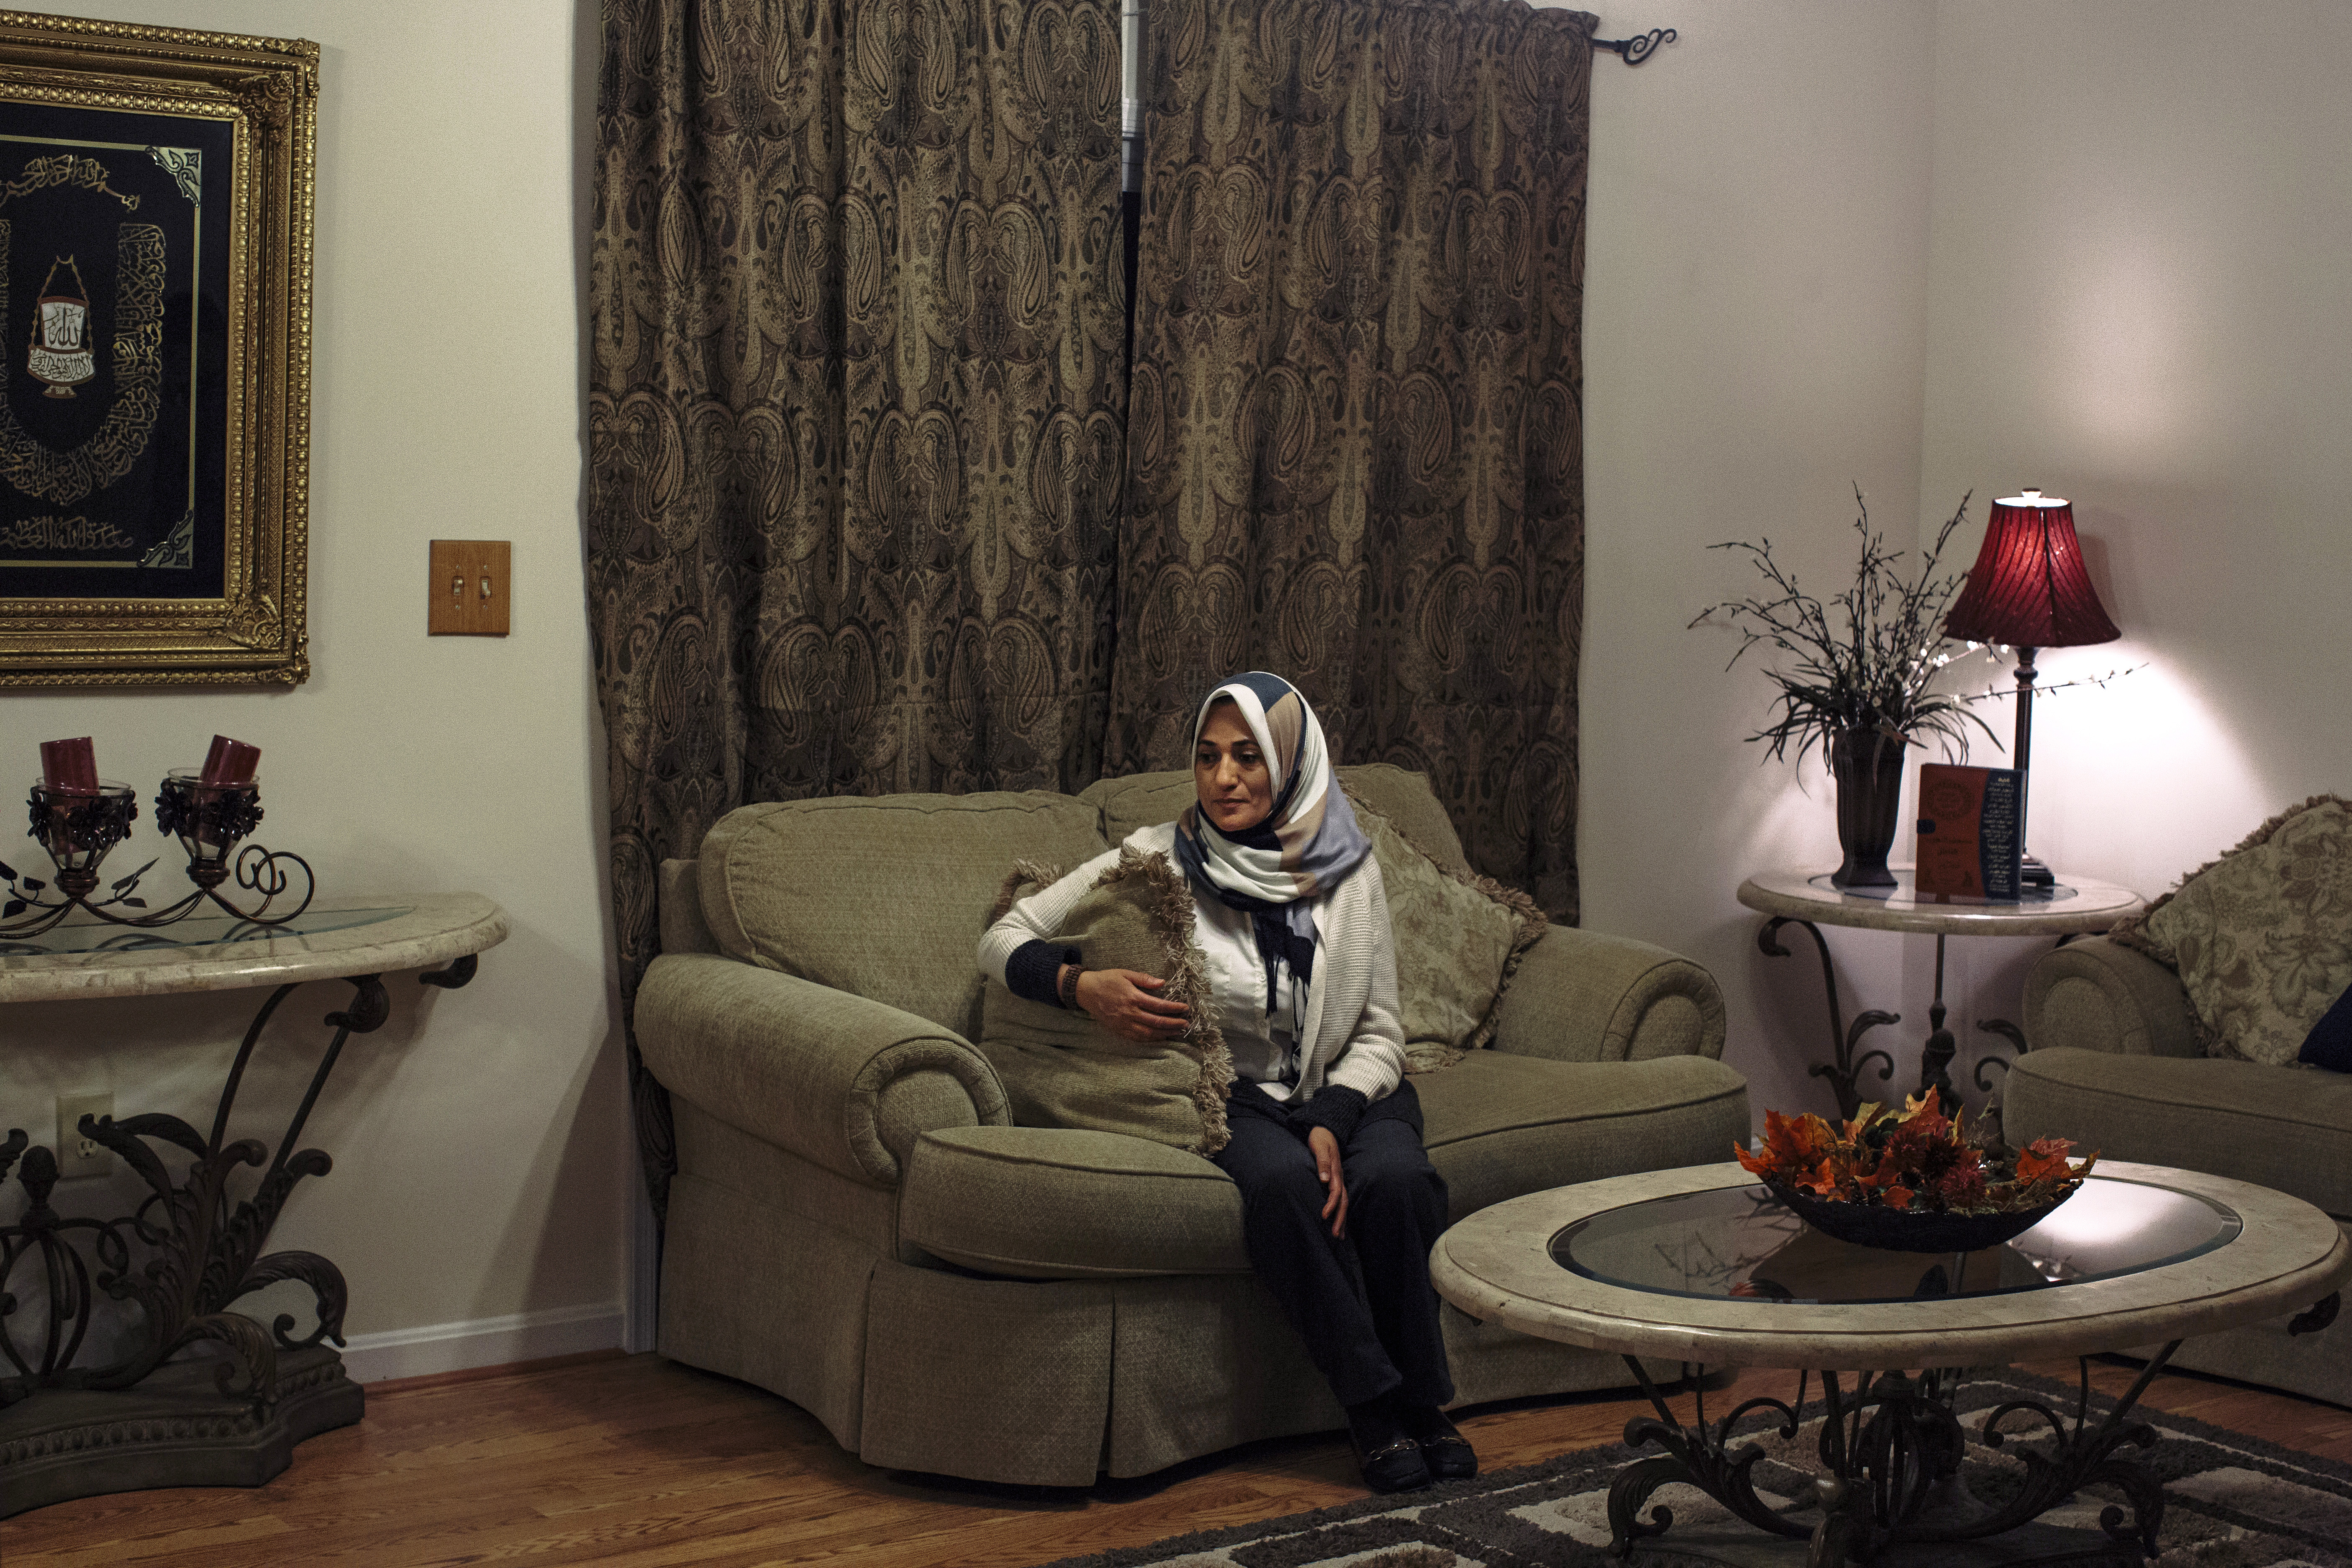 """Sanaa Soliman sits in the living room of her home in Fredericksburg, Va. on Dec. 19, 2015. Sara and Mohamed Shanab are afraid for their mother, who wears a hijab. Sara bought her mother pepper spray. """"I see my mother. Everyone else sees a terrorist,"""" Mohamed says."""